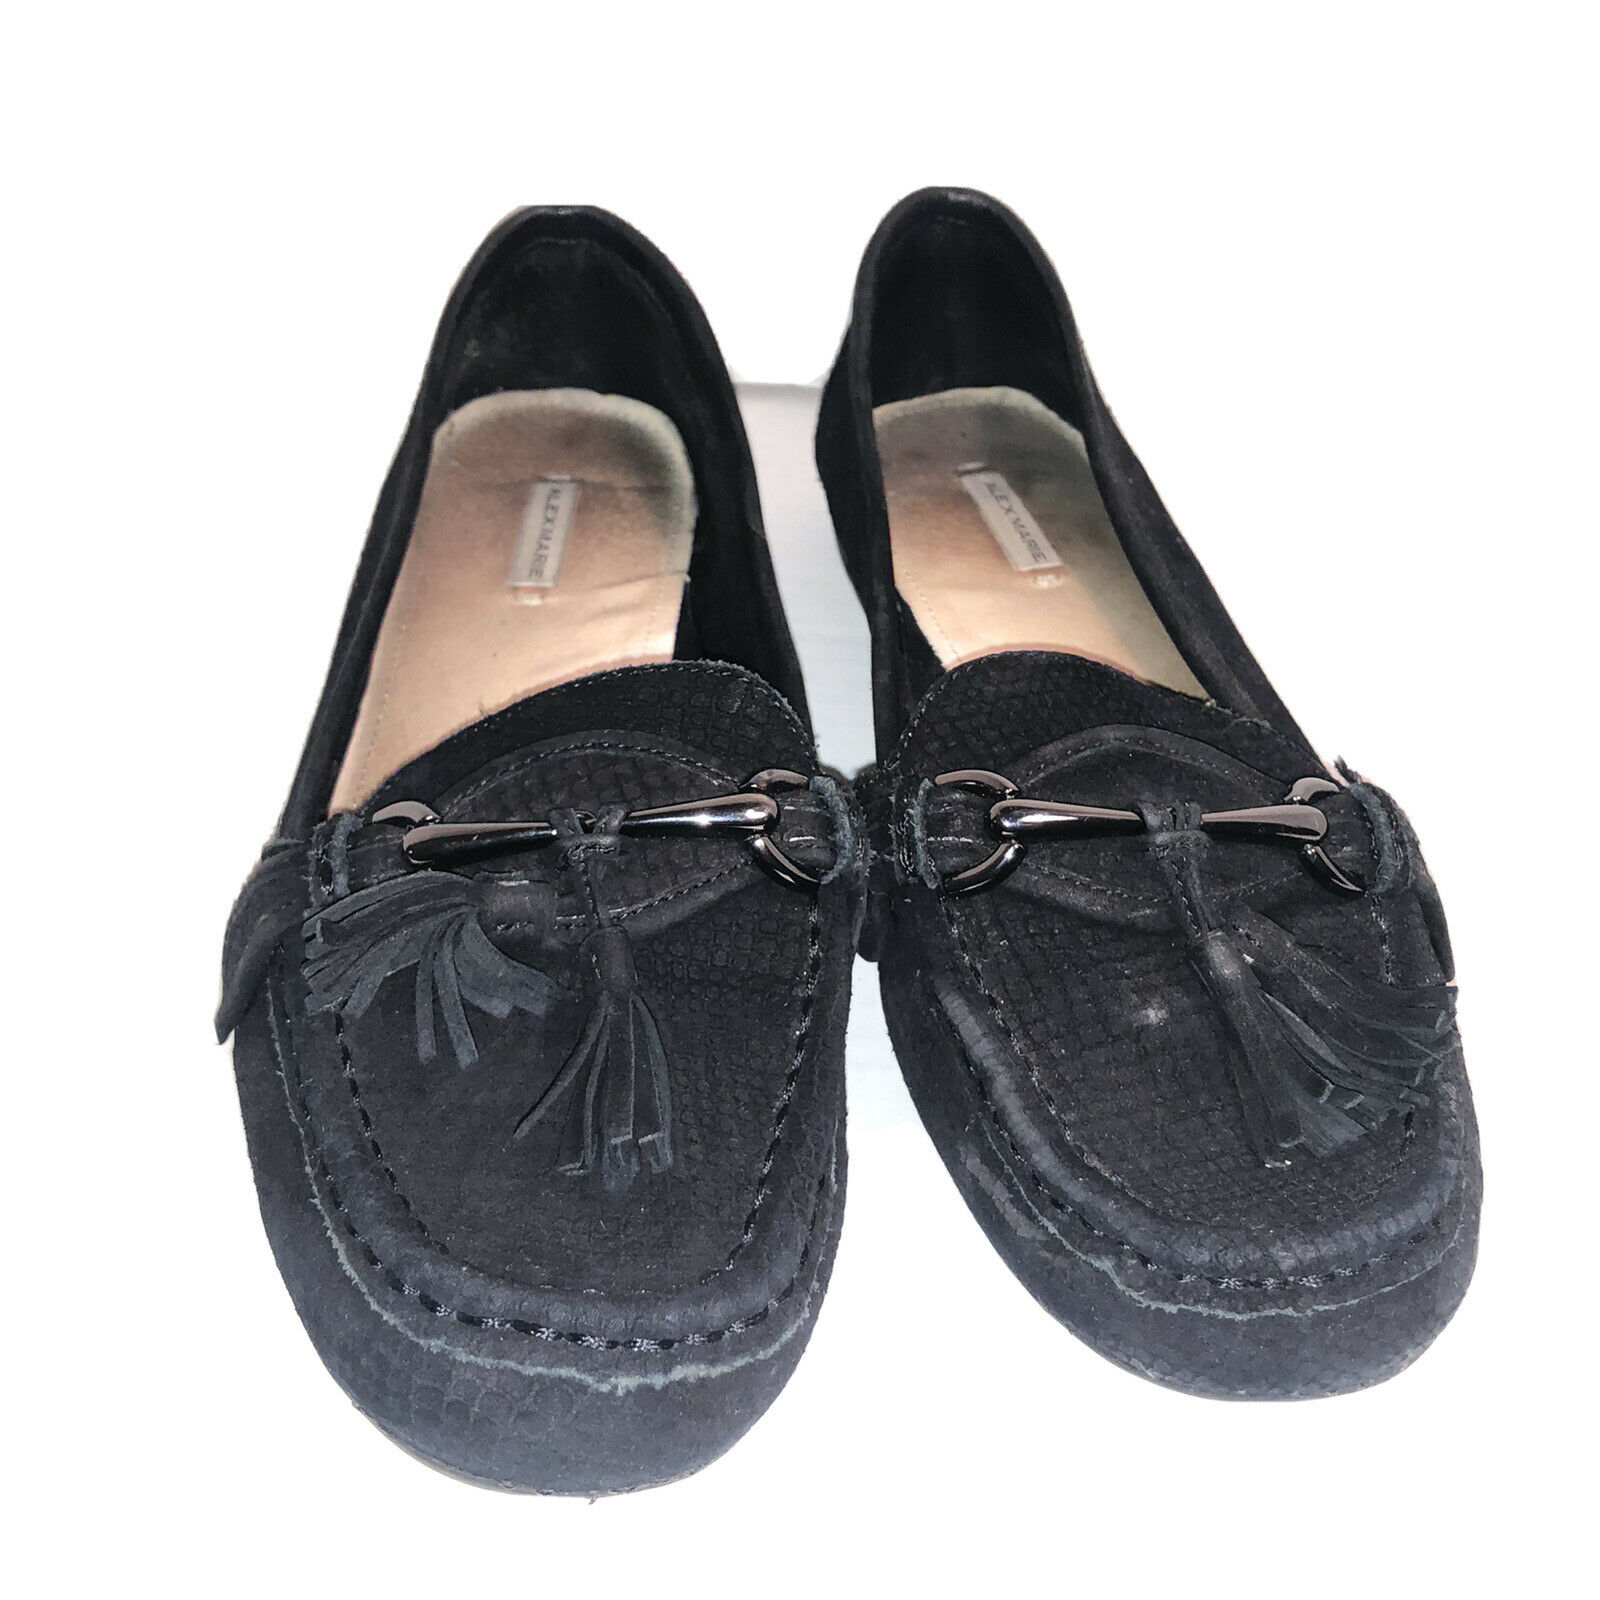 Alex Marie Loafers Black Slip On With Tassel Bow Size 8M